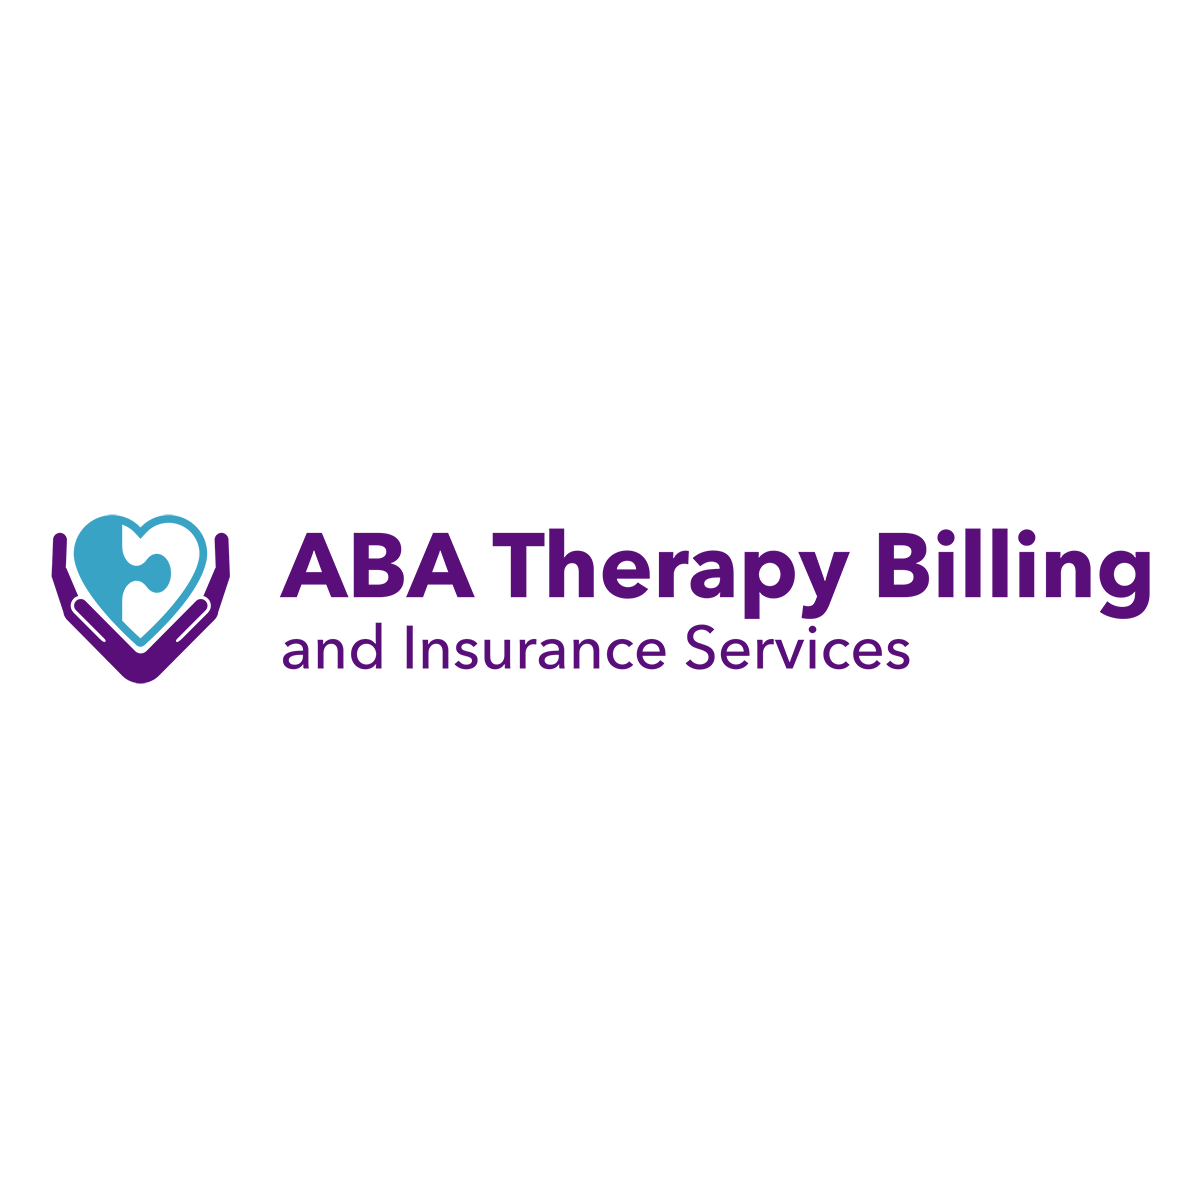 ABA Therapy Billing and Insurance Services | Robinsons